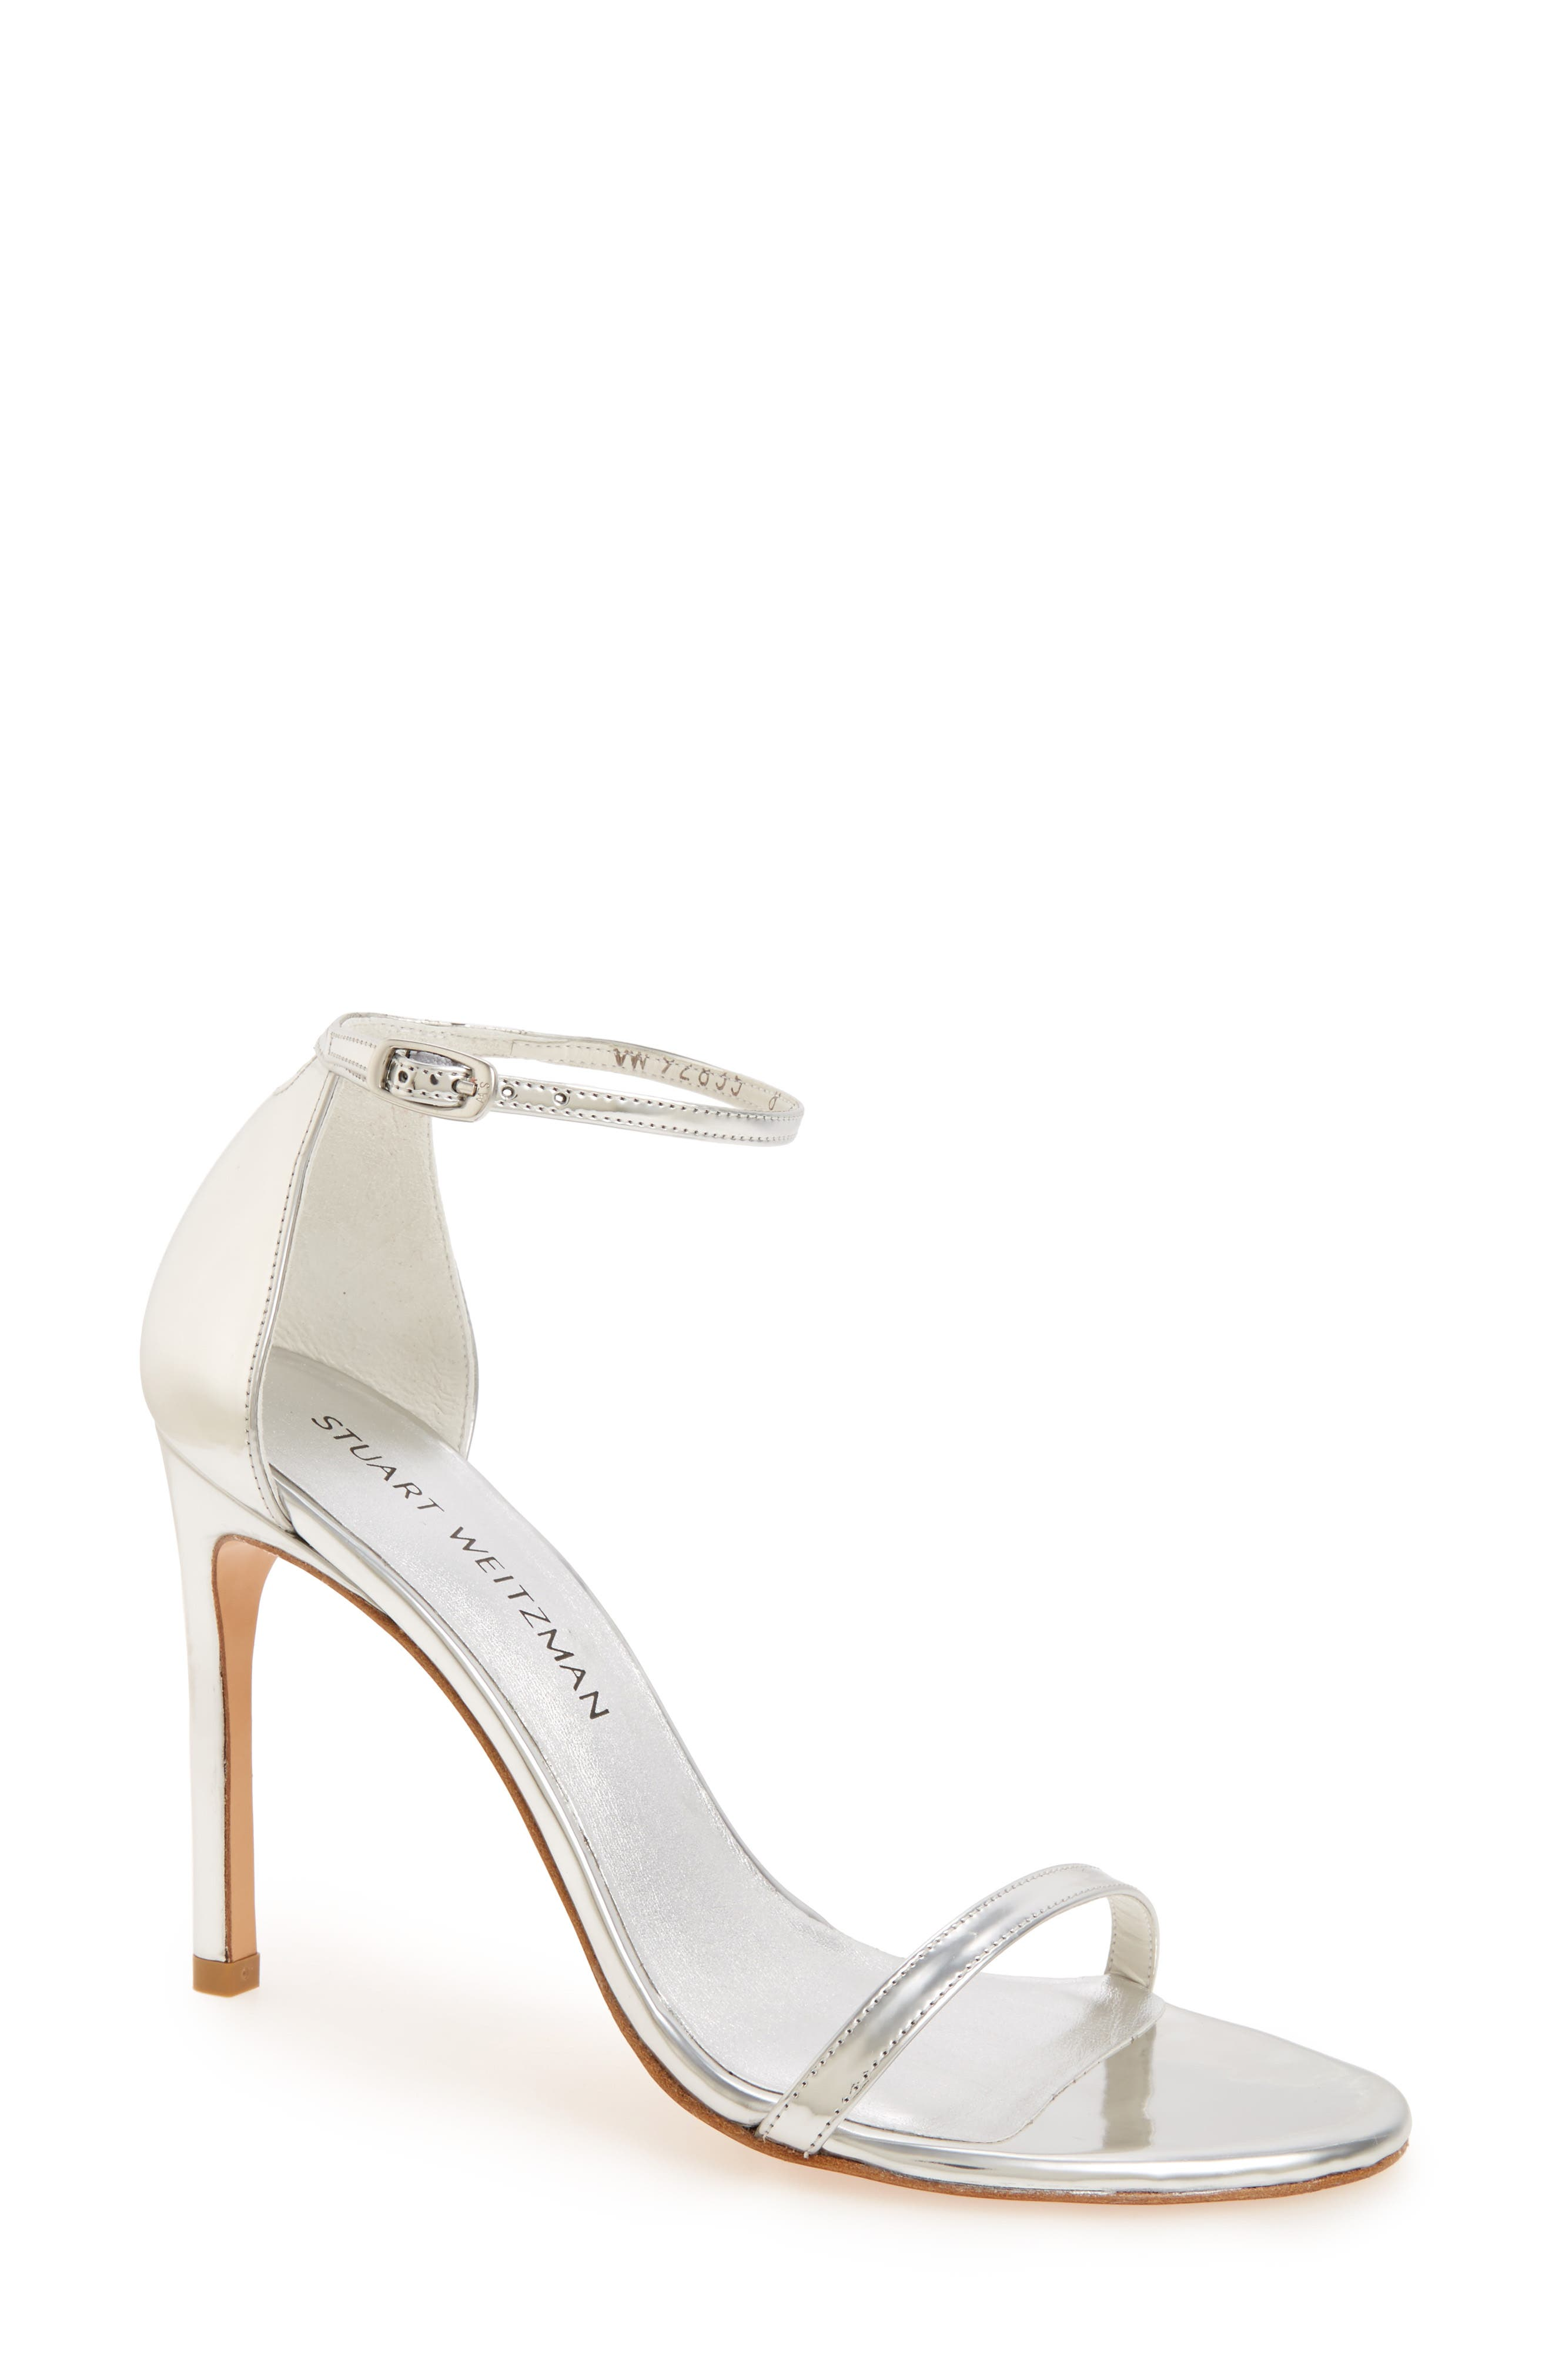 Nudistsong Ankle Strap Sandal,                             Main thumbnail 16, color,